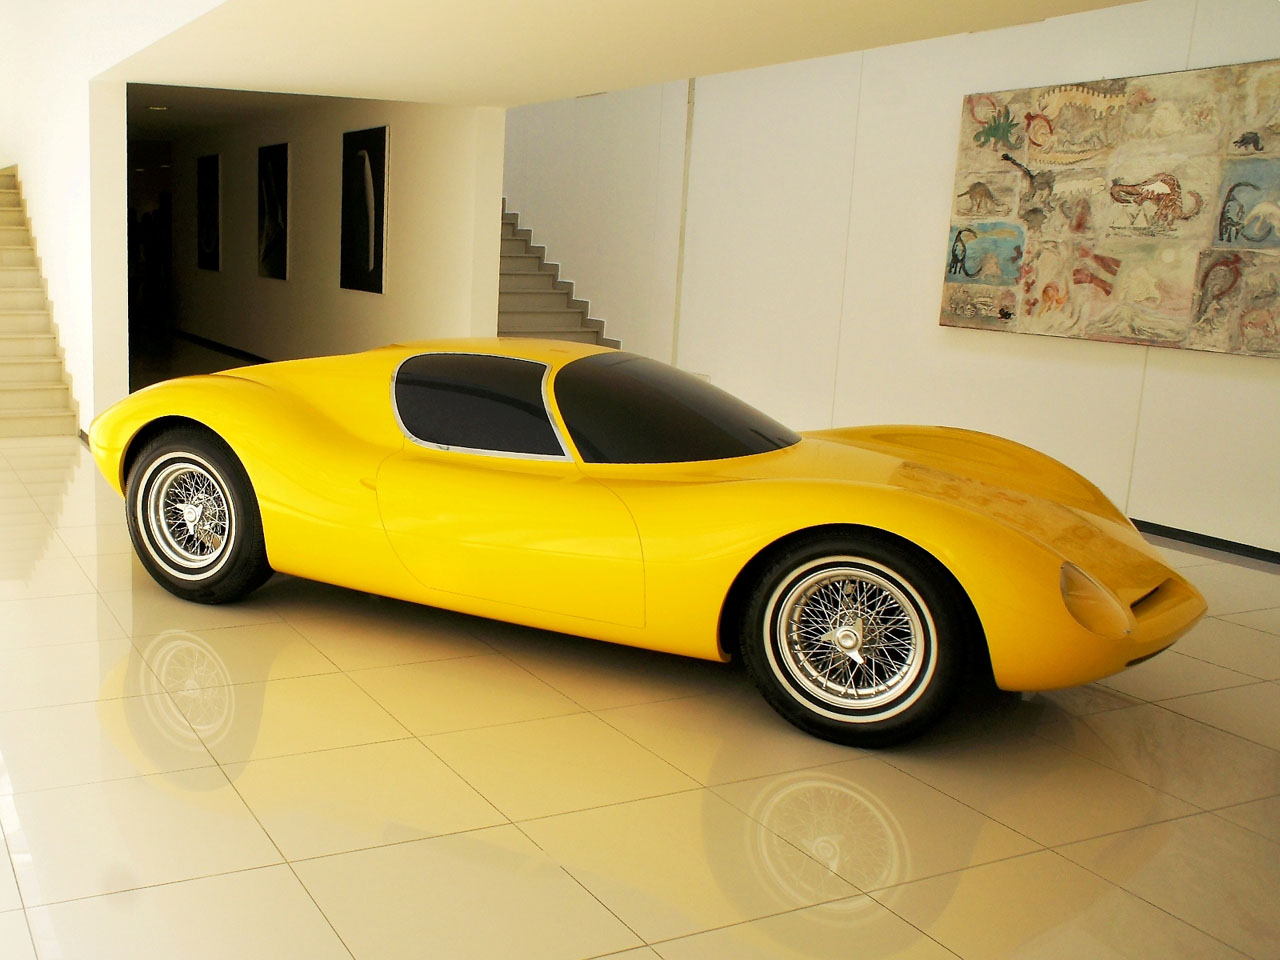 Giugiaro S Original Lamborghini Design Unearthed And